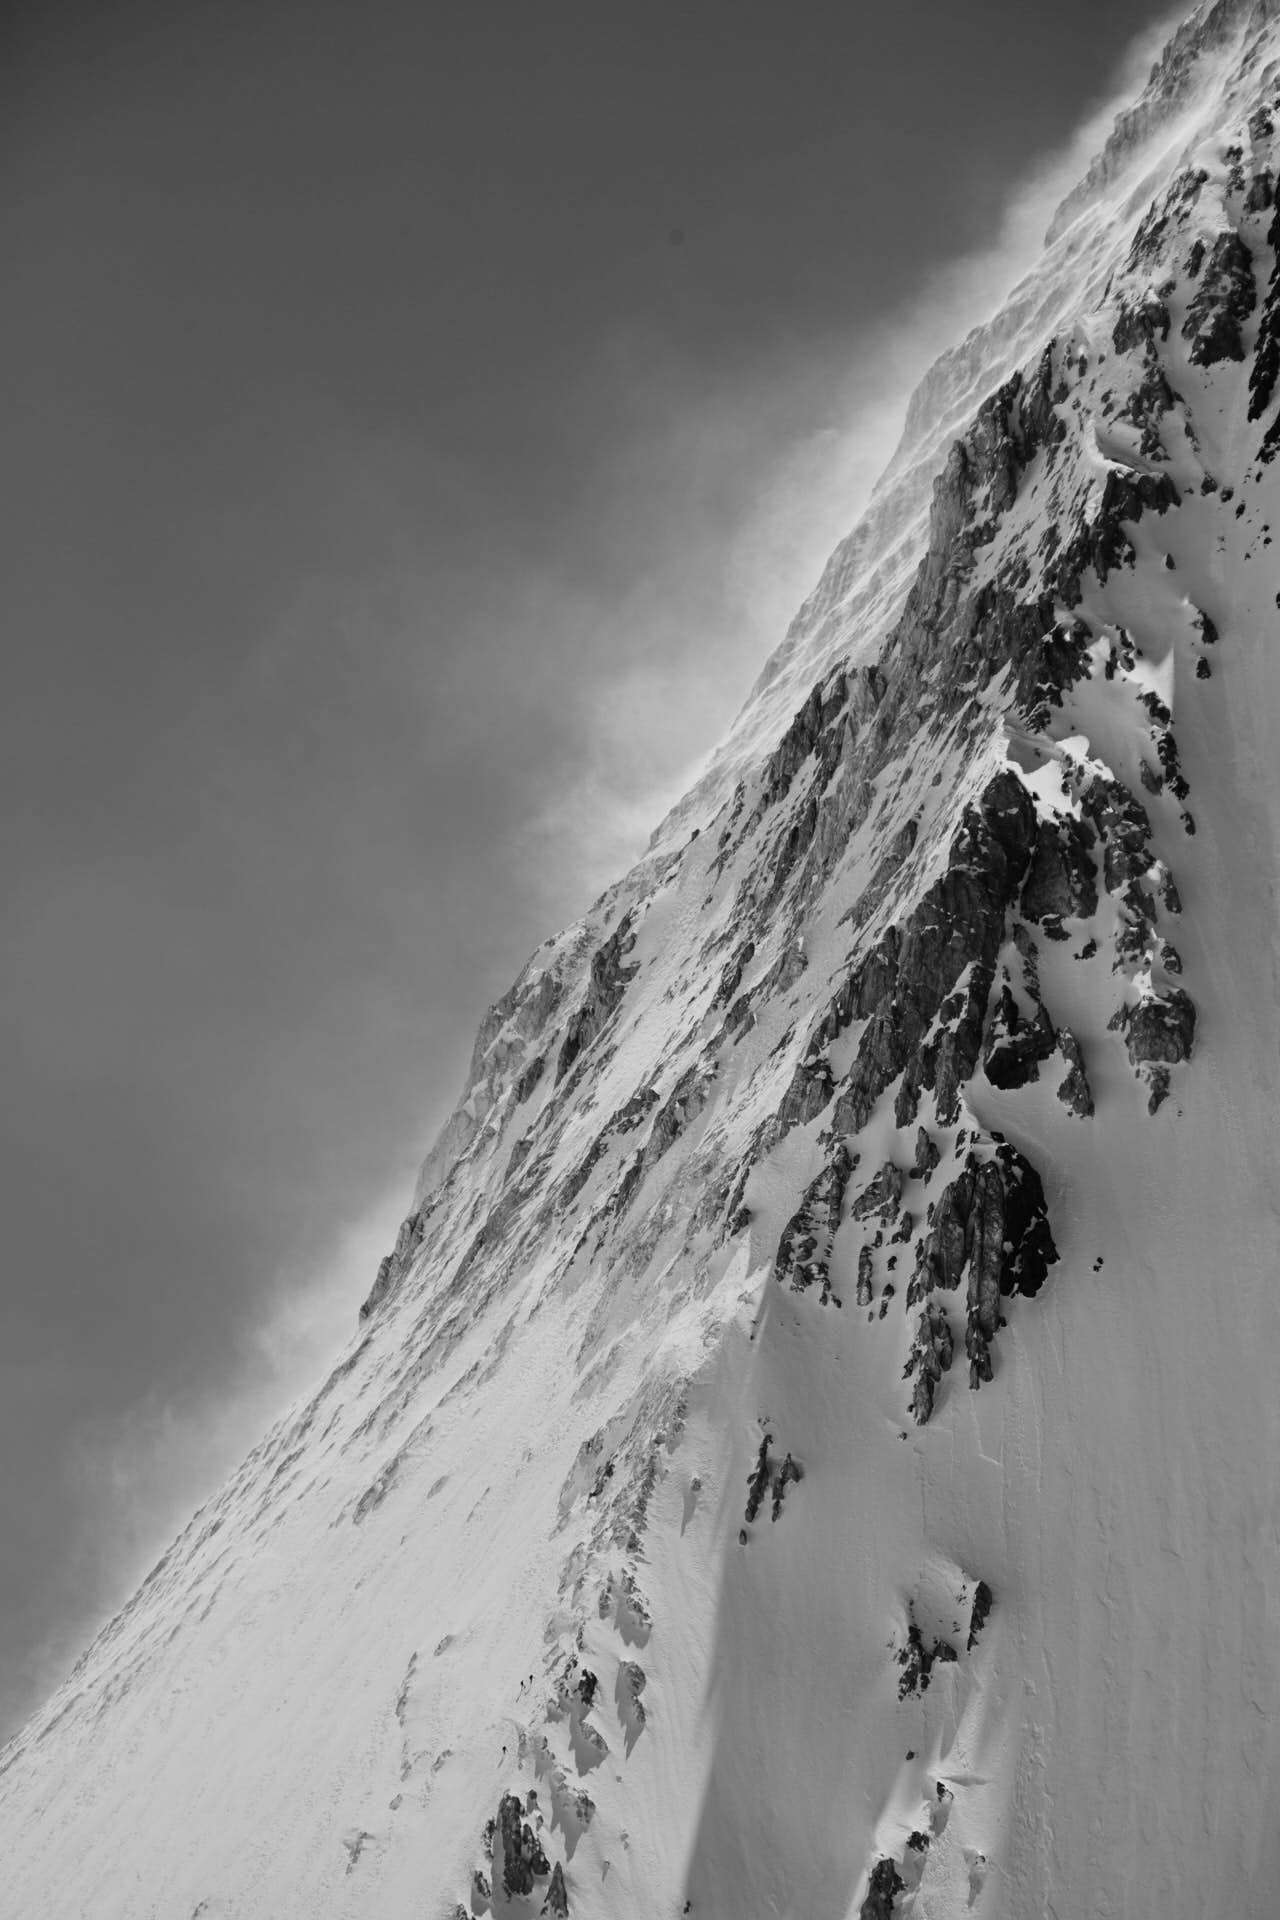 Three people ascending a mountain slope full of snow and rock. Black and white photography.